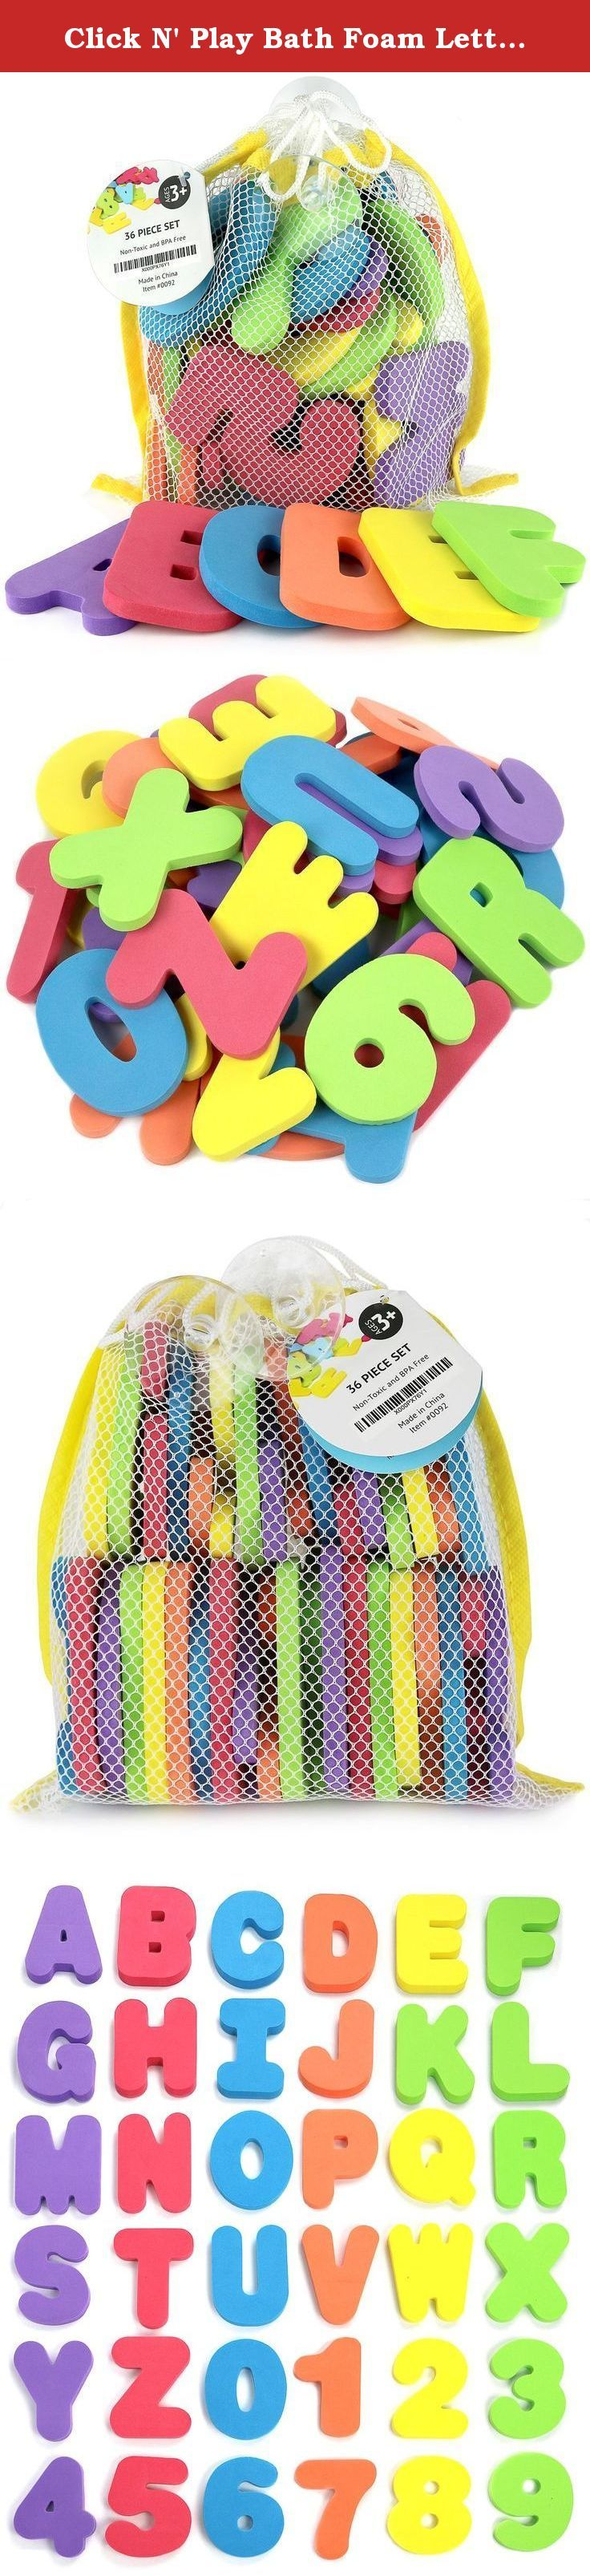 Click N' Play Bath Foam Letters & Numbers with Mesh Bath Toys Organizer, 36 Count. Luxury 36 Piece Foam Bath Letters and Numbers Set Plus Bath Mesh Toy Organizer. Parents now look for toys that are not only fun, but also aid in developing their child's learning skills and we all know kids love to learn so why not help them learn in the bath with this luxury 36 piece foam bath letters and numbers set. These luxury foam bath letters and numbers set now make bath time an enjoyable and…